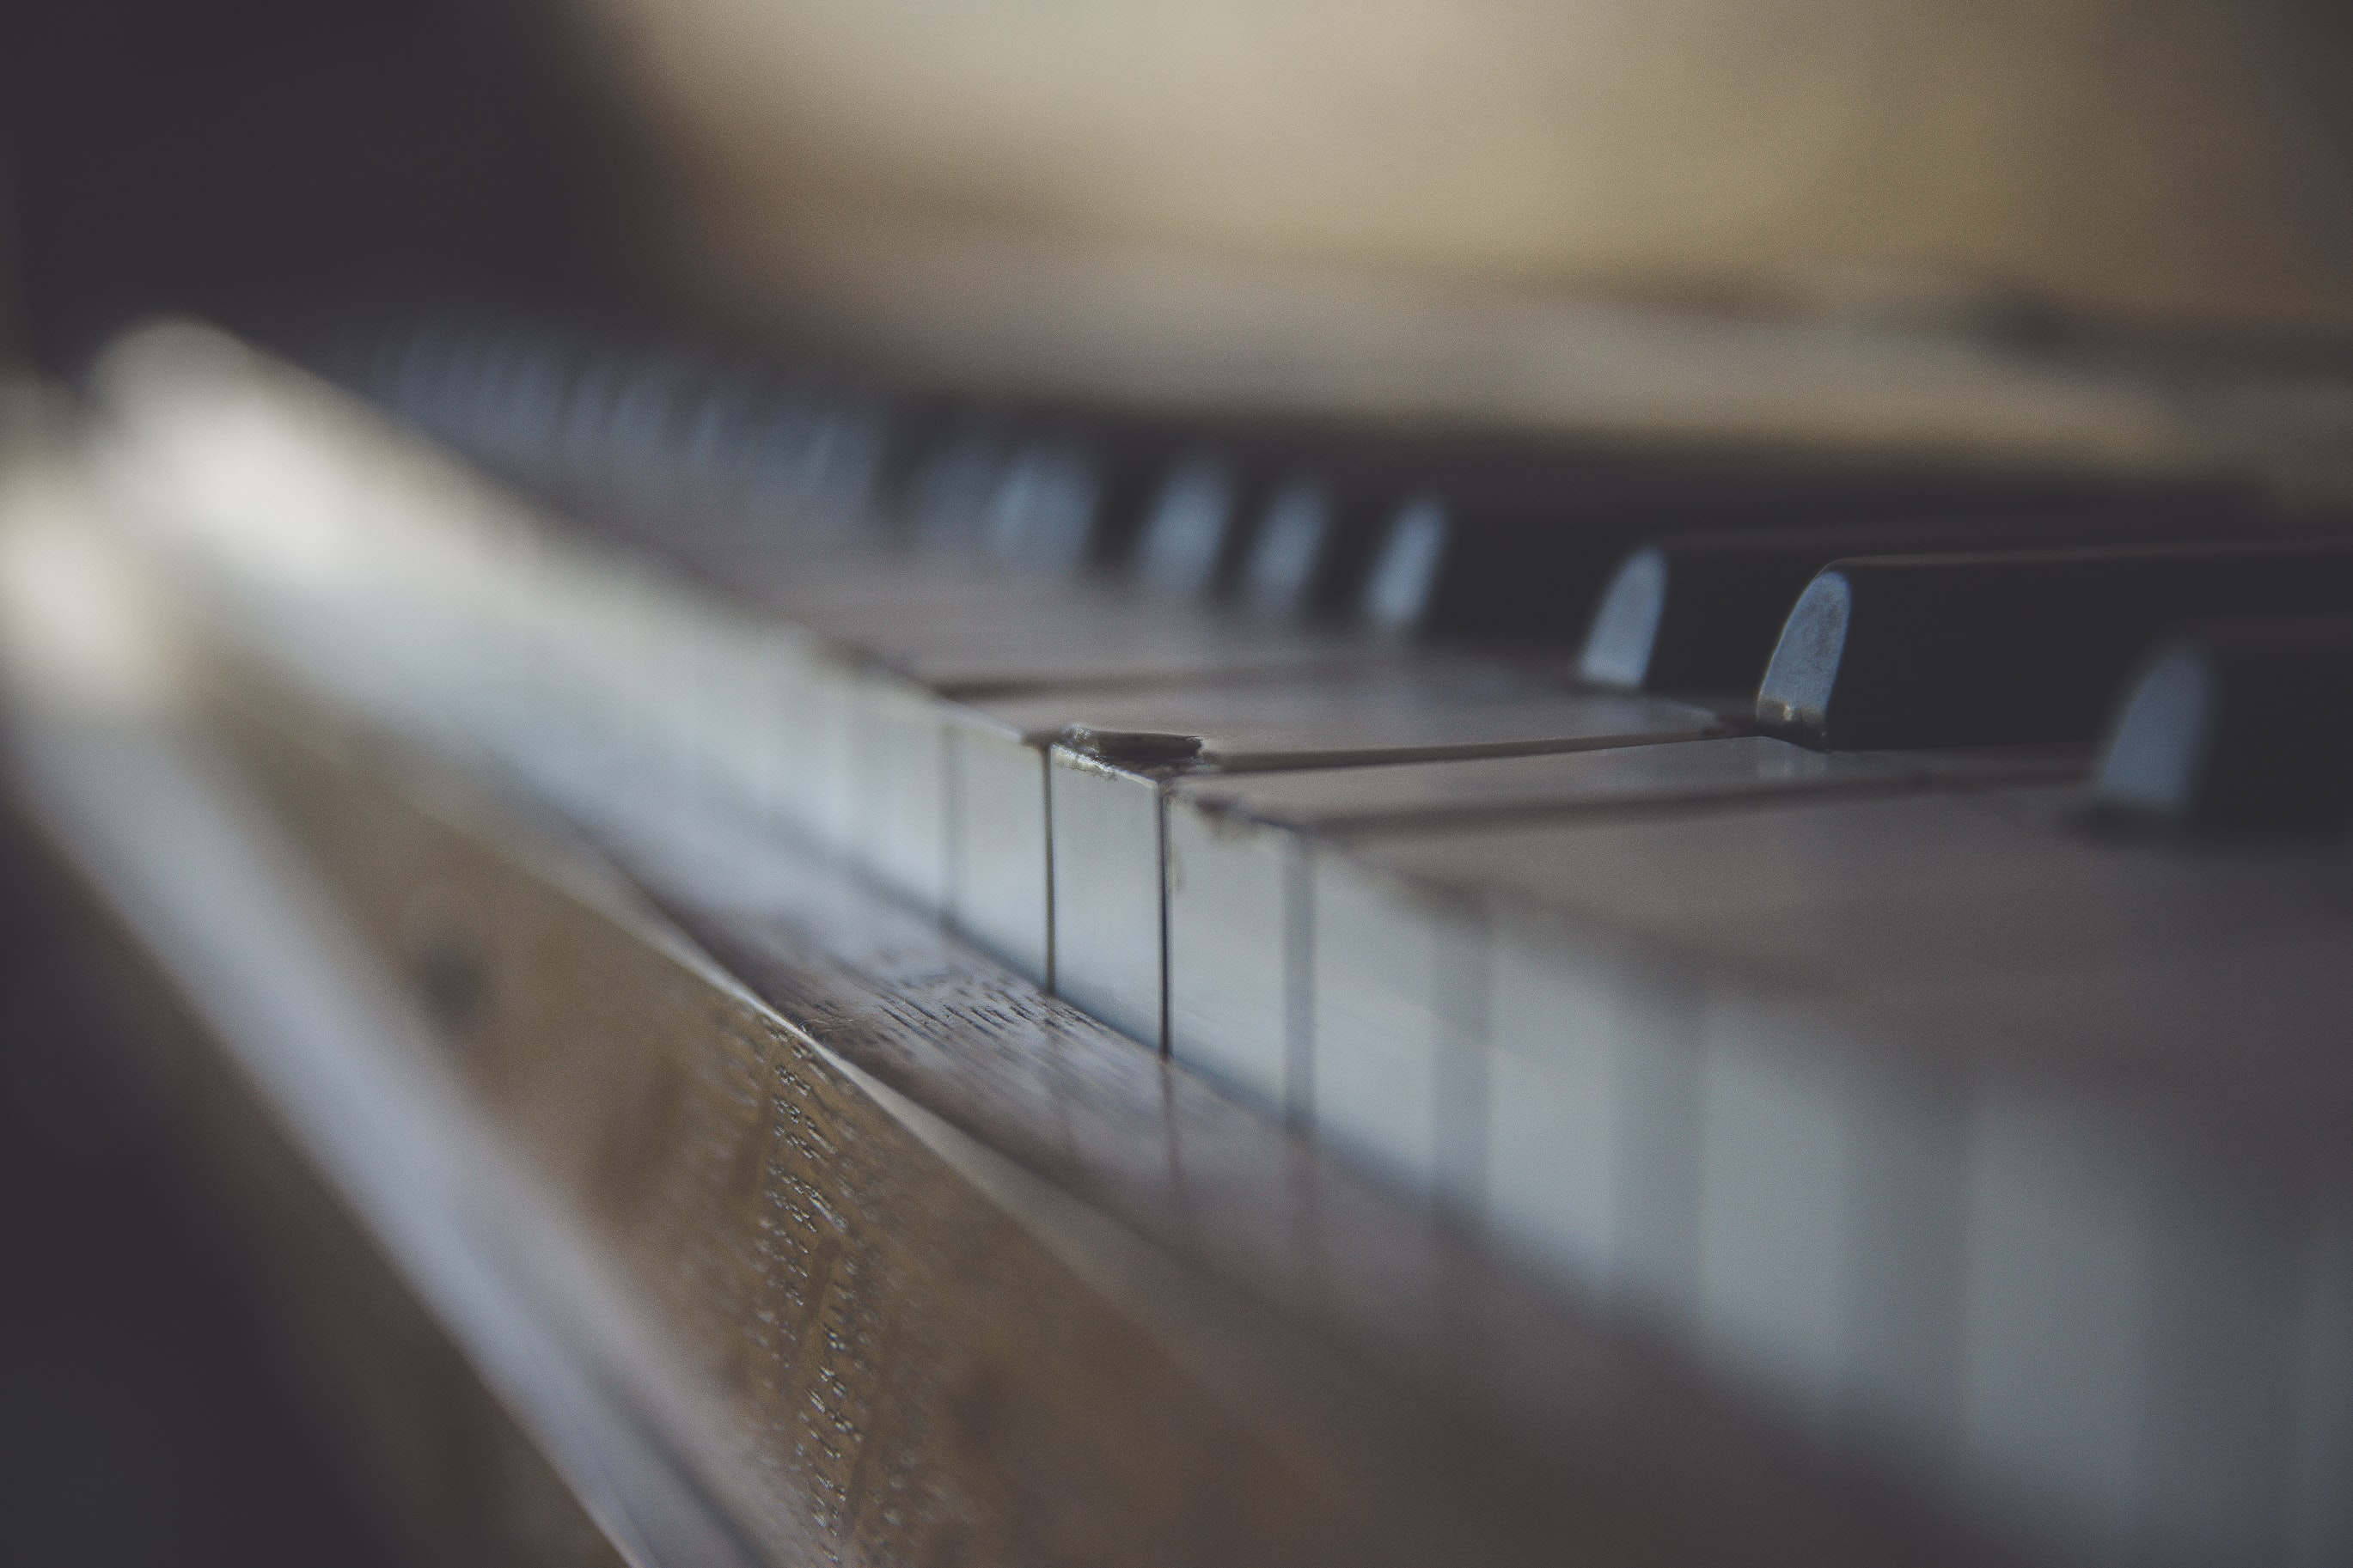 A blurry shot of the surface of a piano keyboard